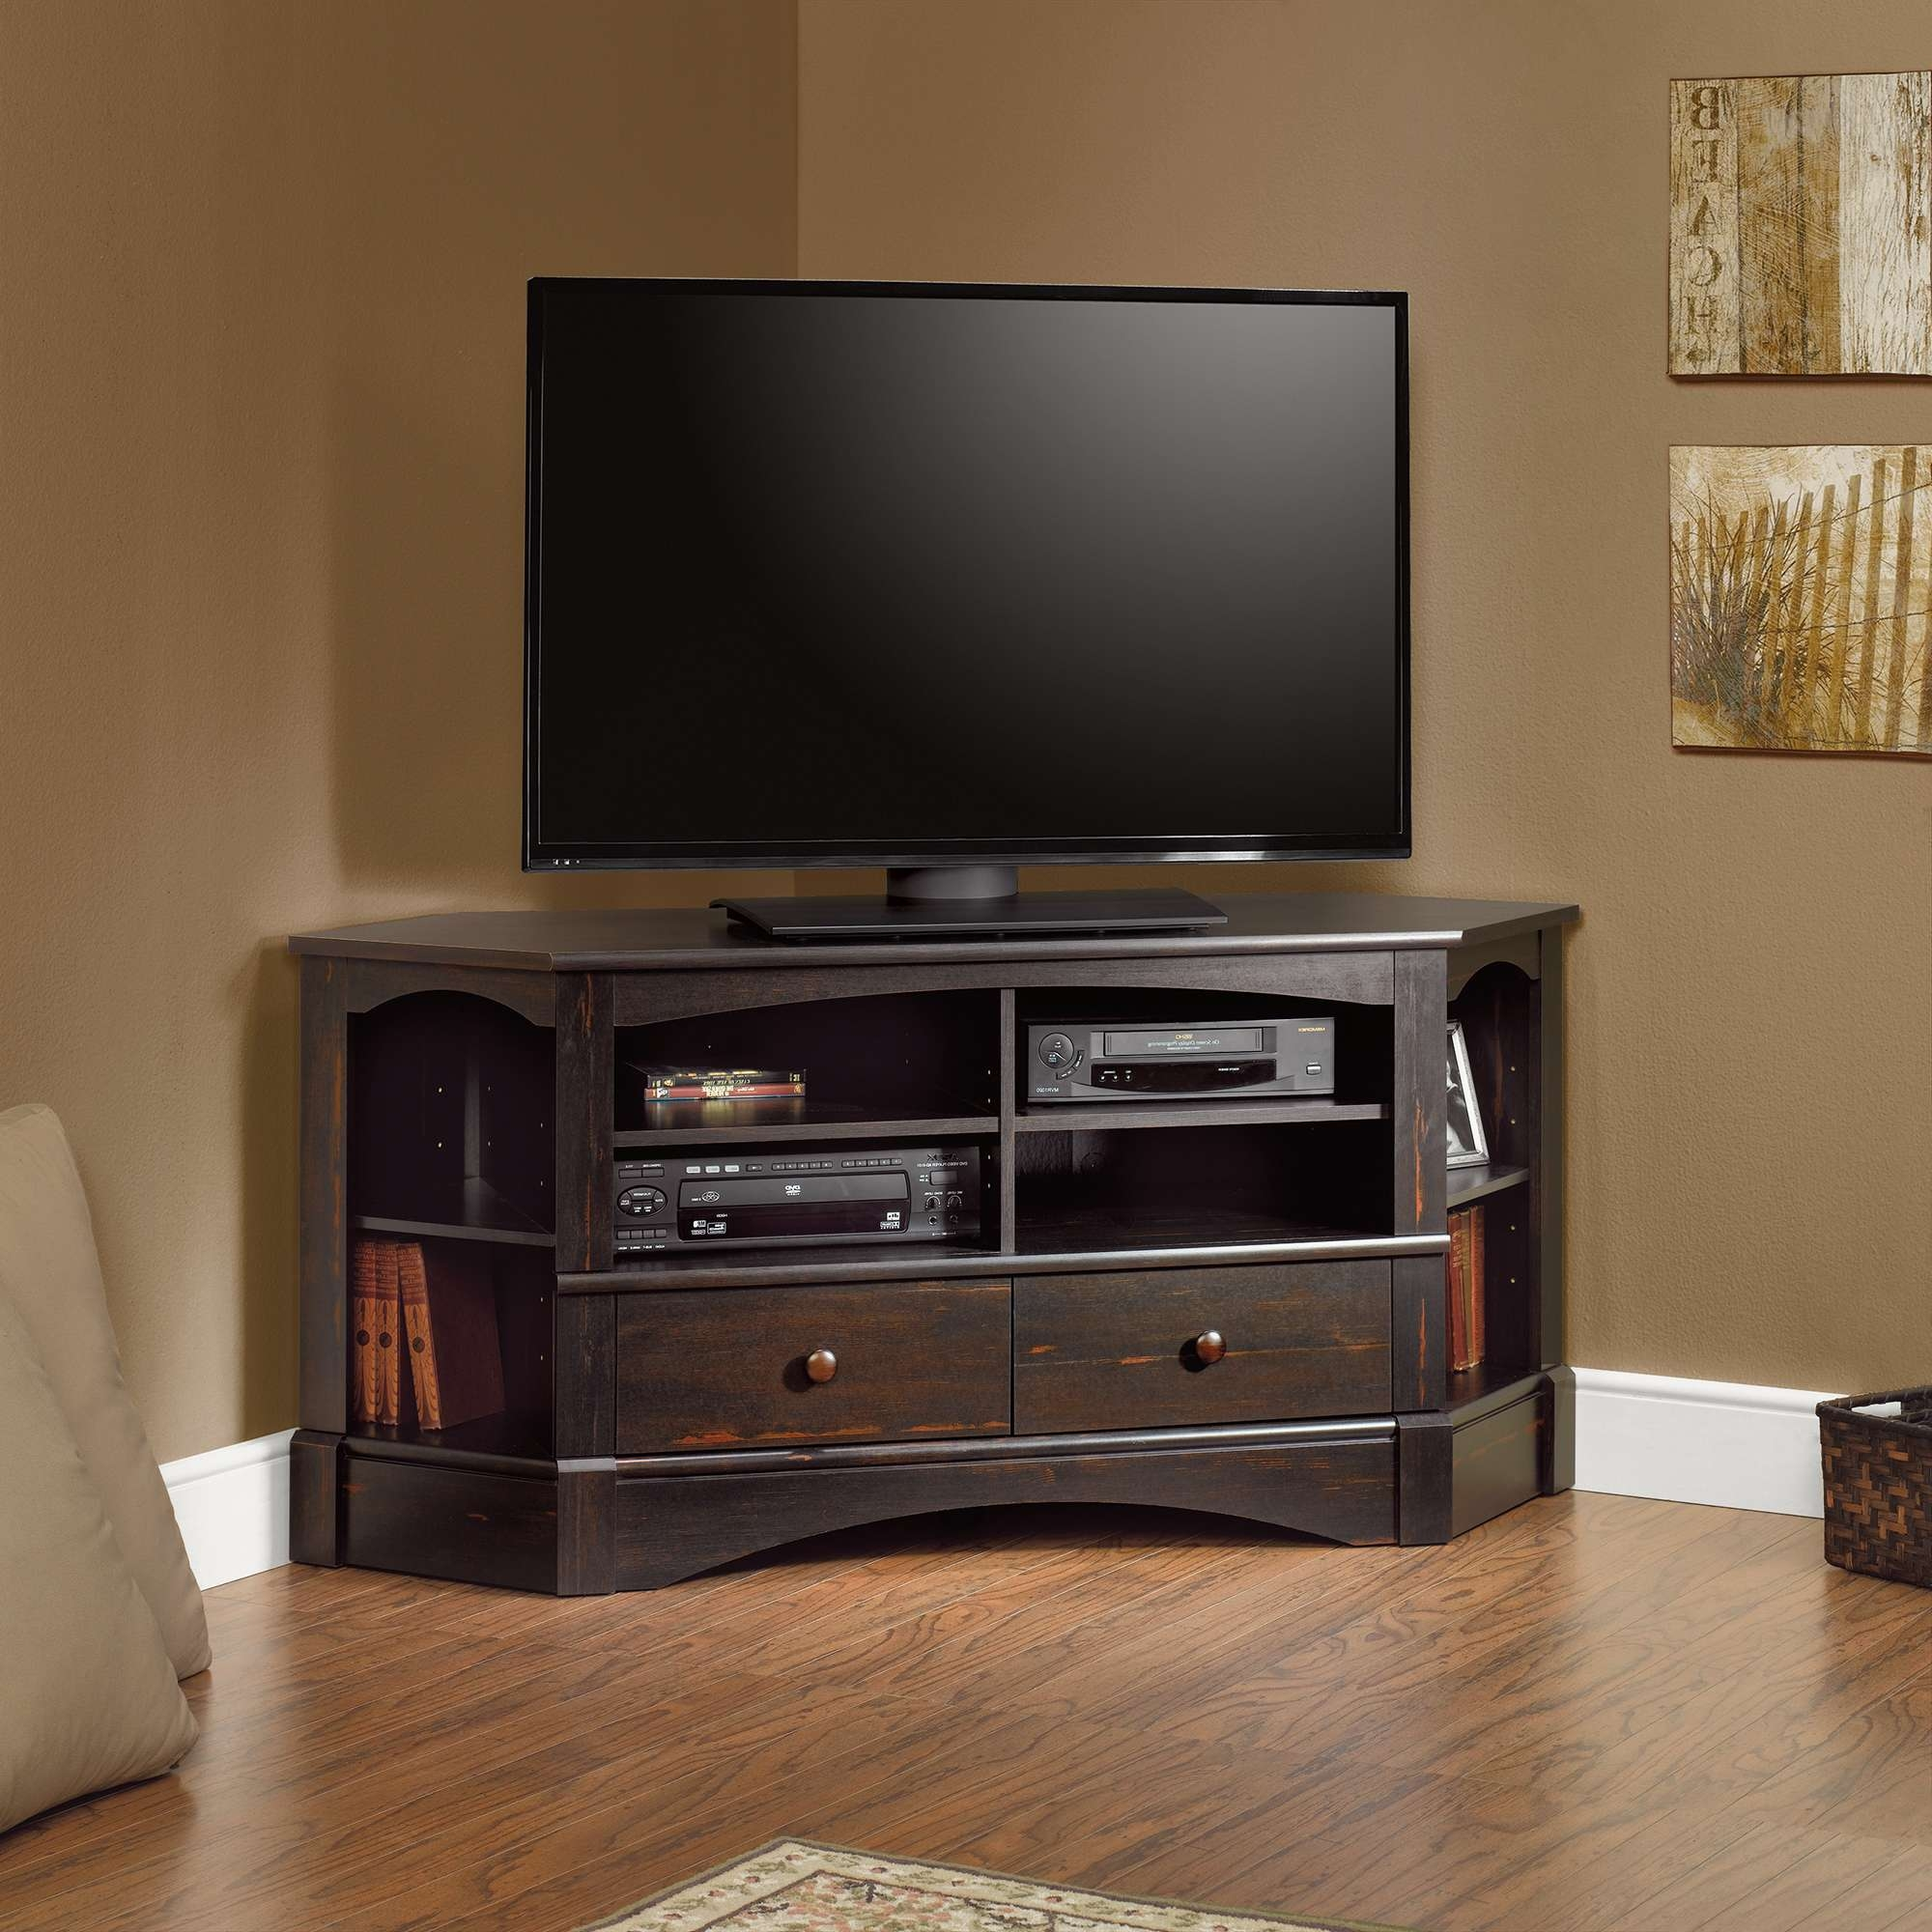 Harbor View | Corner Entertainment Credenza | 402902 | Sauder Inside Black Wood Corner Tv Stands (View 11 of 15)